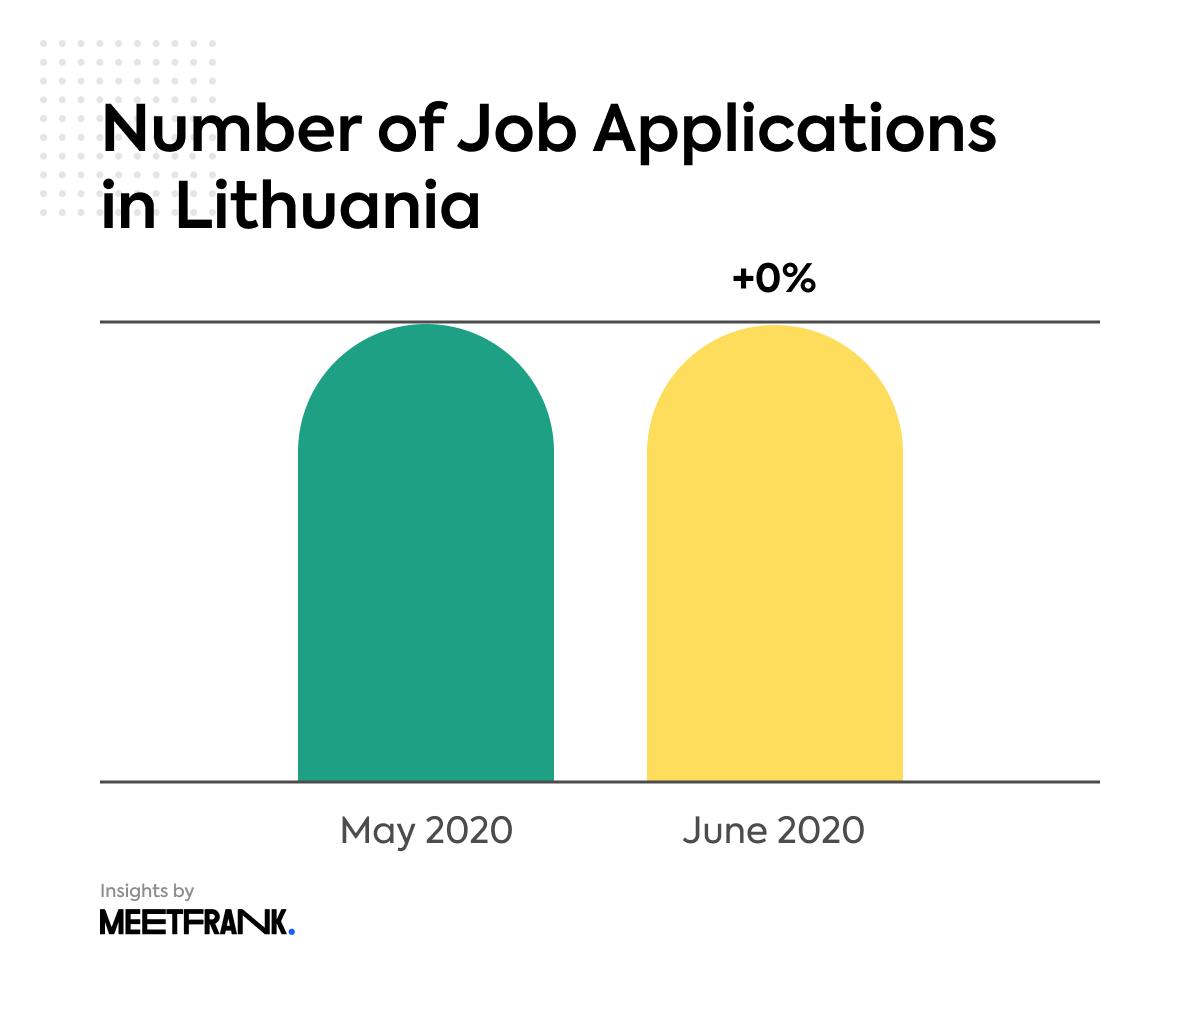 number of job applications in Lithuania